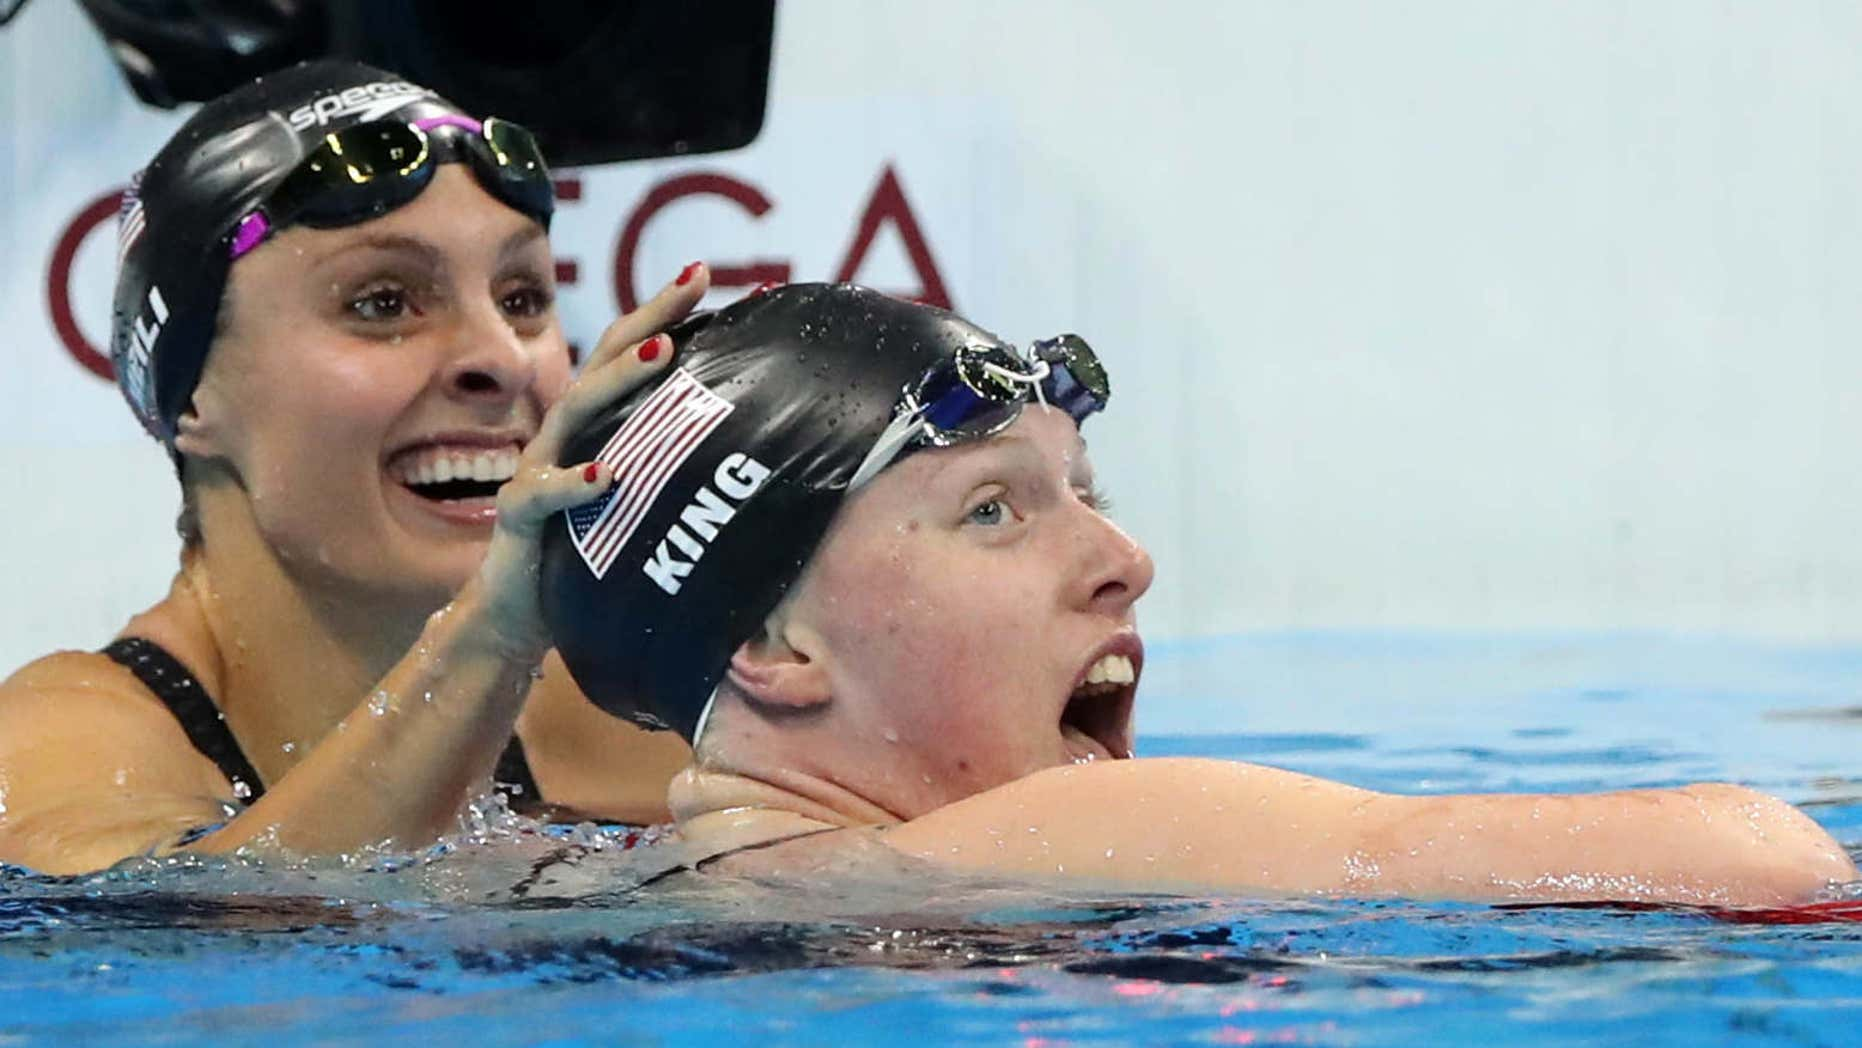 Team USA swimmer Lilly King has been outspoken about doping at the Olympics.